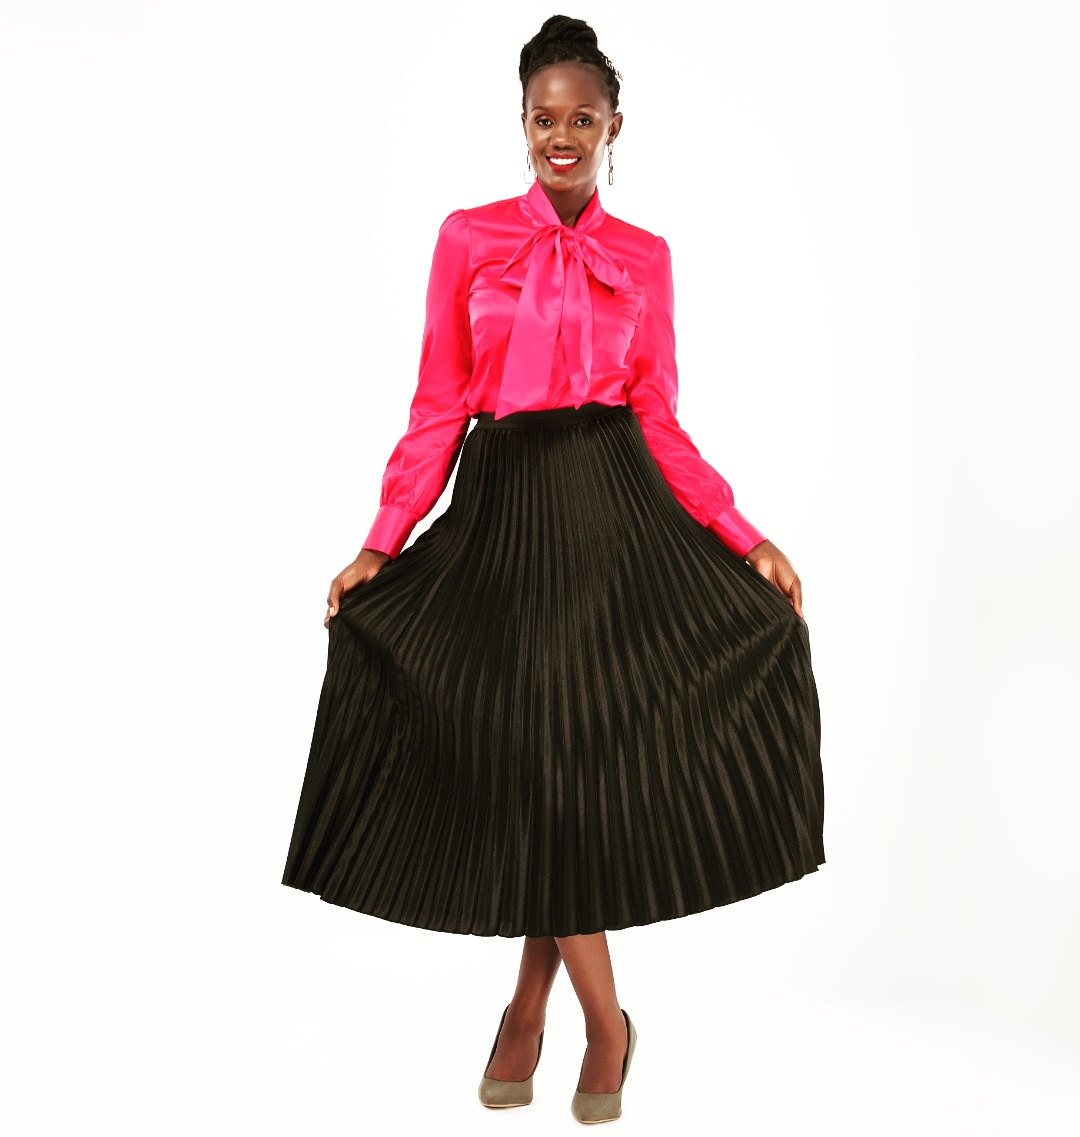 ....I just love to love you more. With my spirit and my soul. I just love to bless your name. I will worship you!   #worship #pink #pleatedskirt #happy #smile #blessedbeyondmeasurepic.twitter.com/NRVxFdWQTO